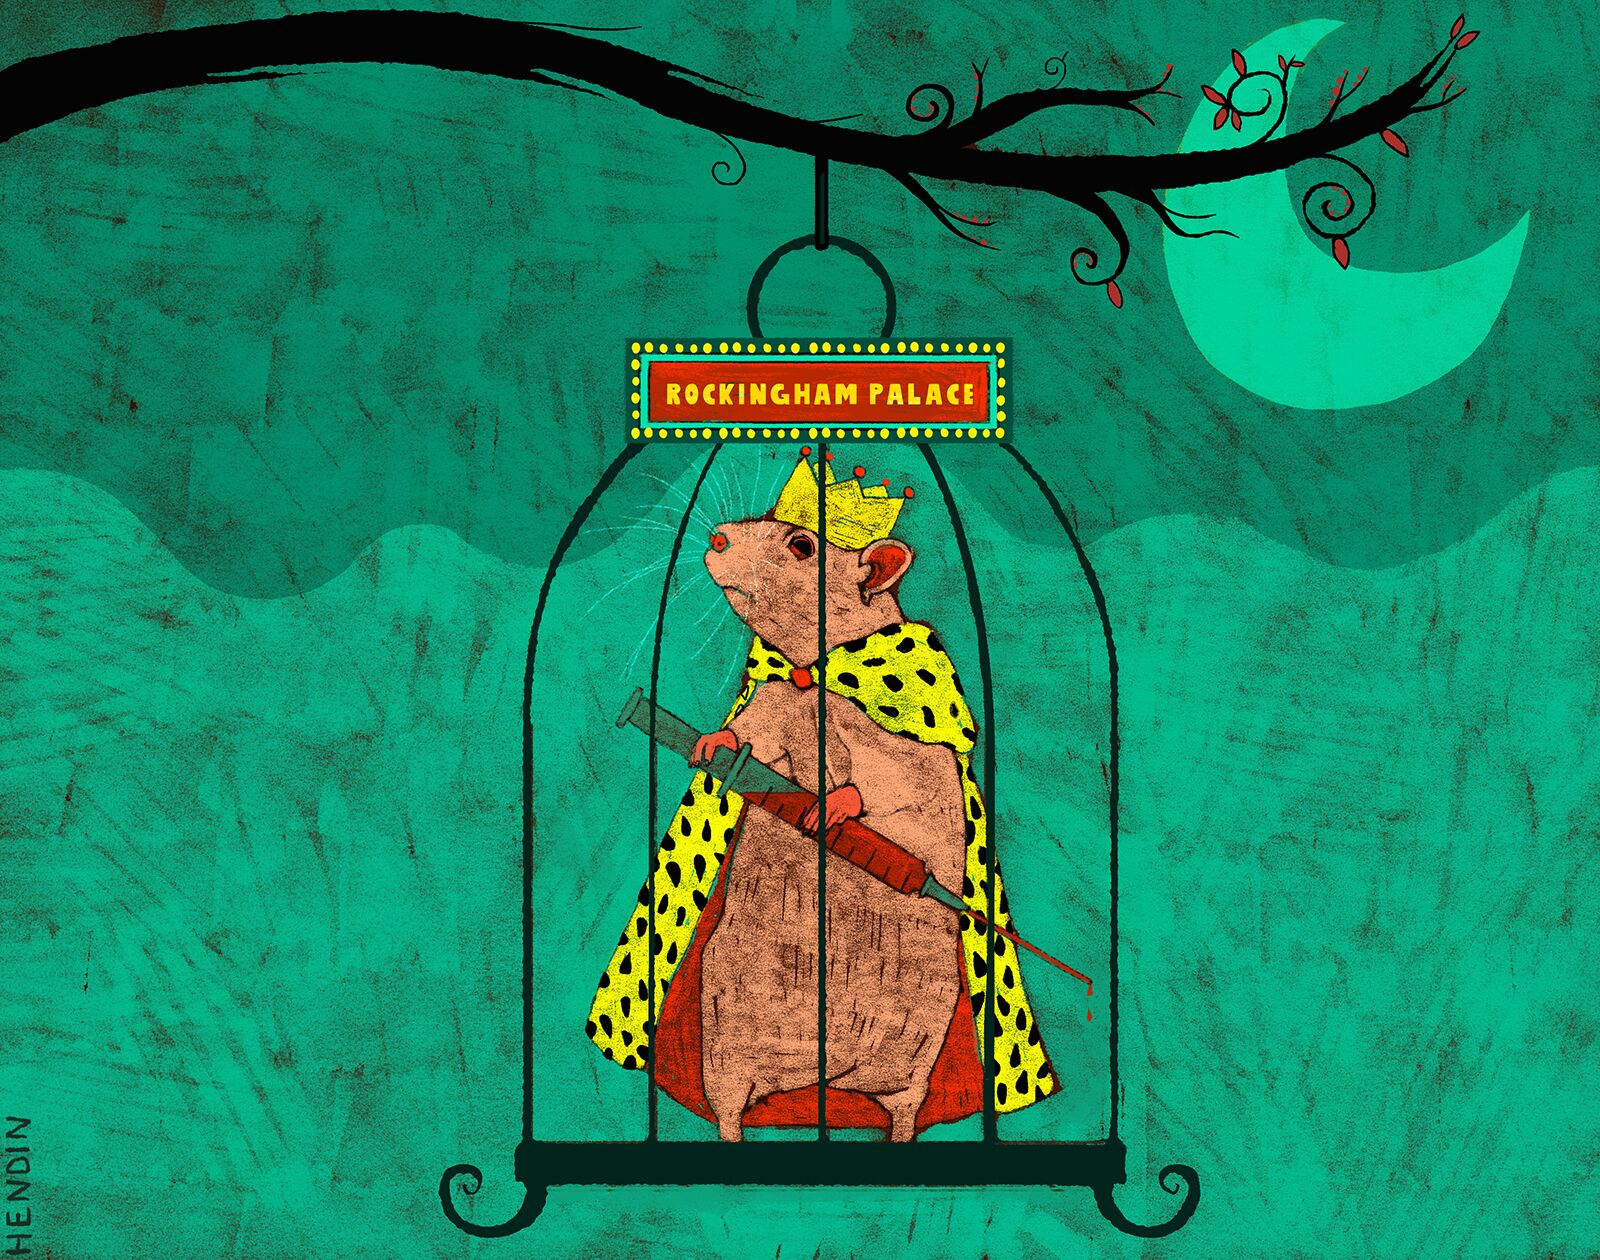 rebecca-hendin-witch-animal-twitter-halloween-buzzfeed-illustration-3a_preview